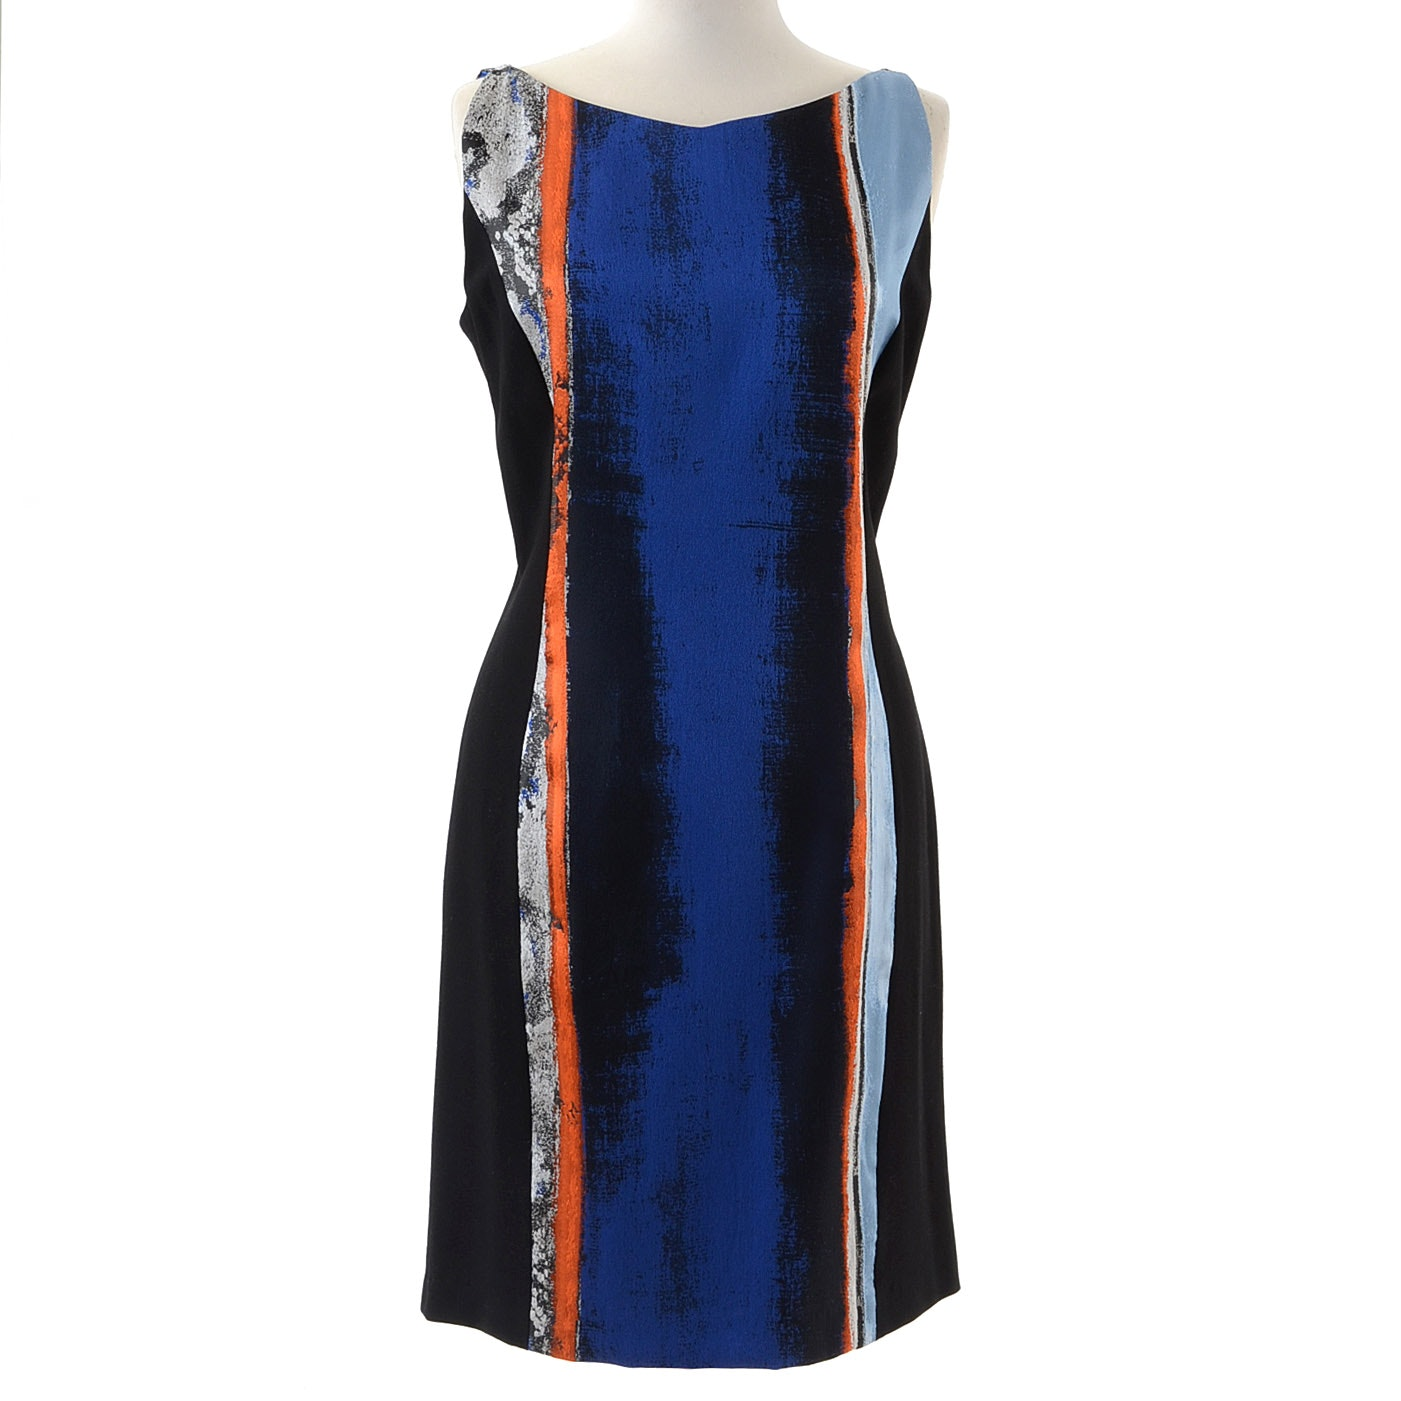 Elie Tahari Jacquard Patterned Dress